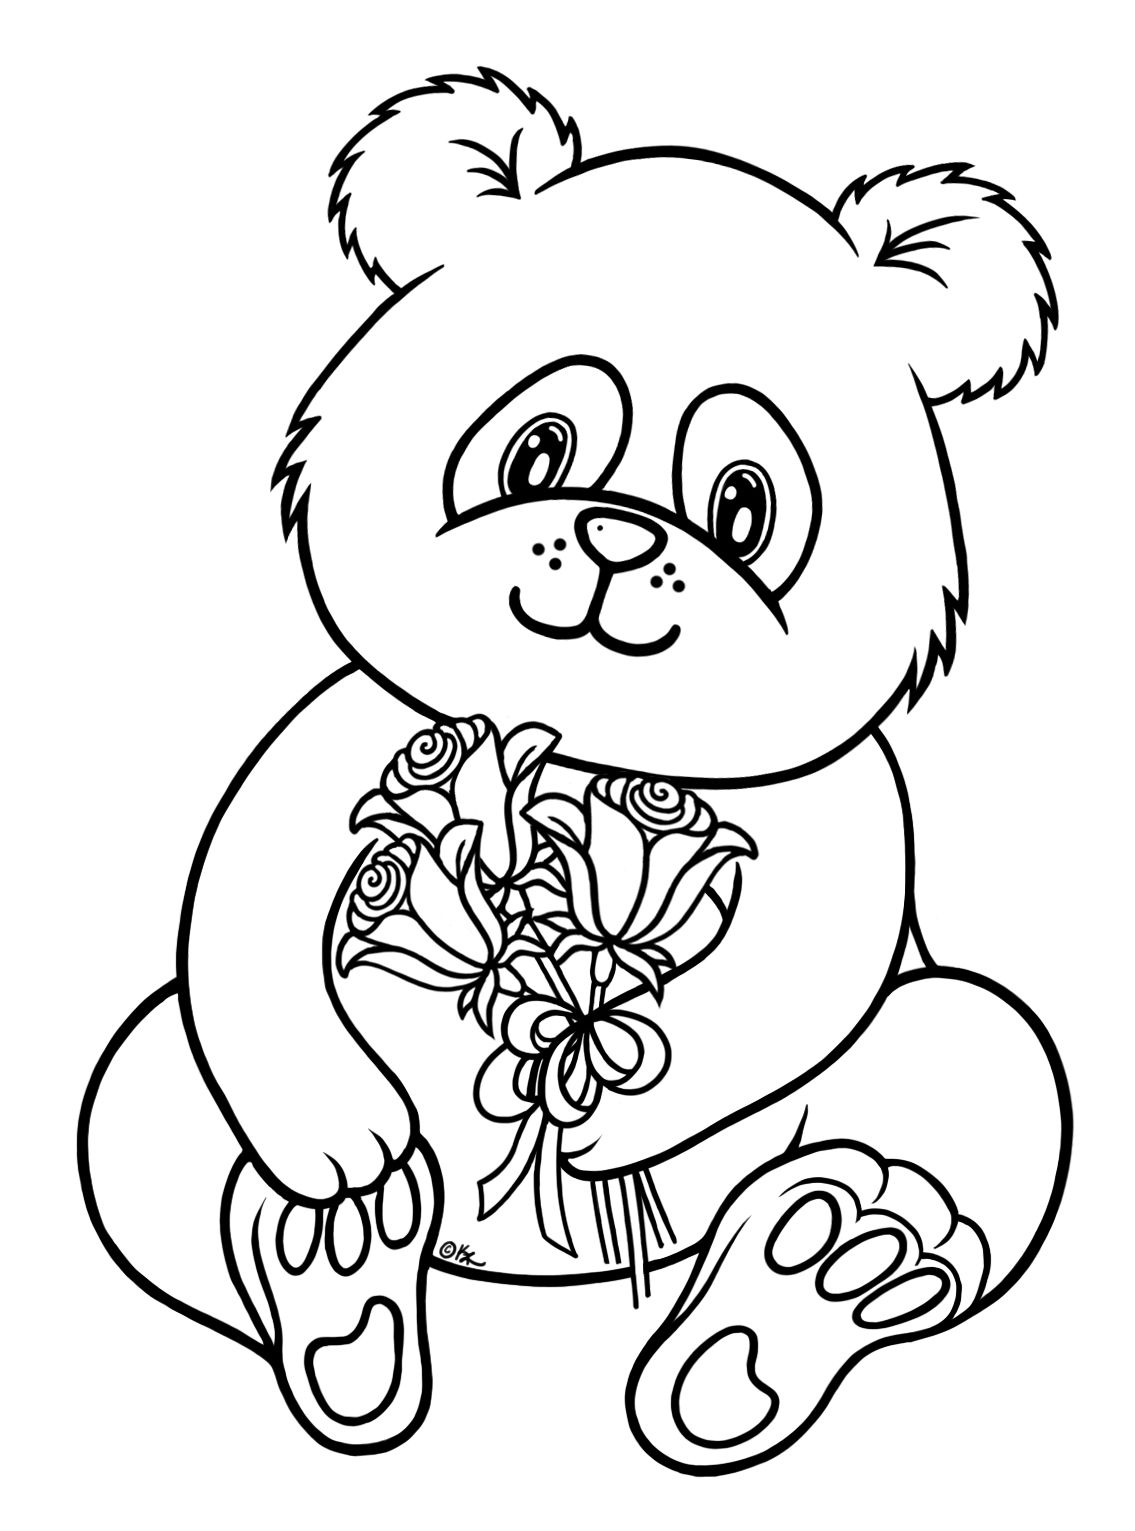 1135x1531 Cute Ba Panda Coloring Pages Only Coloring Pages Coloring Panda